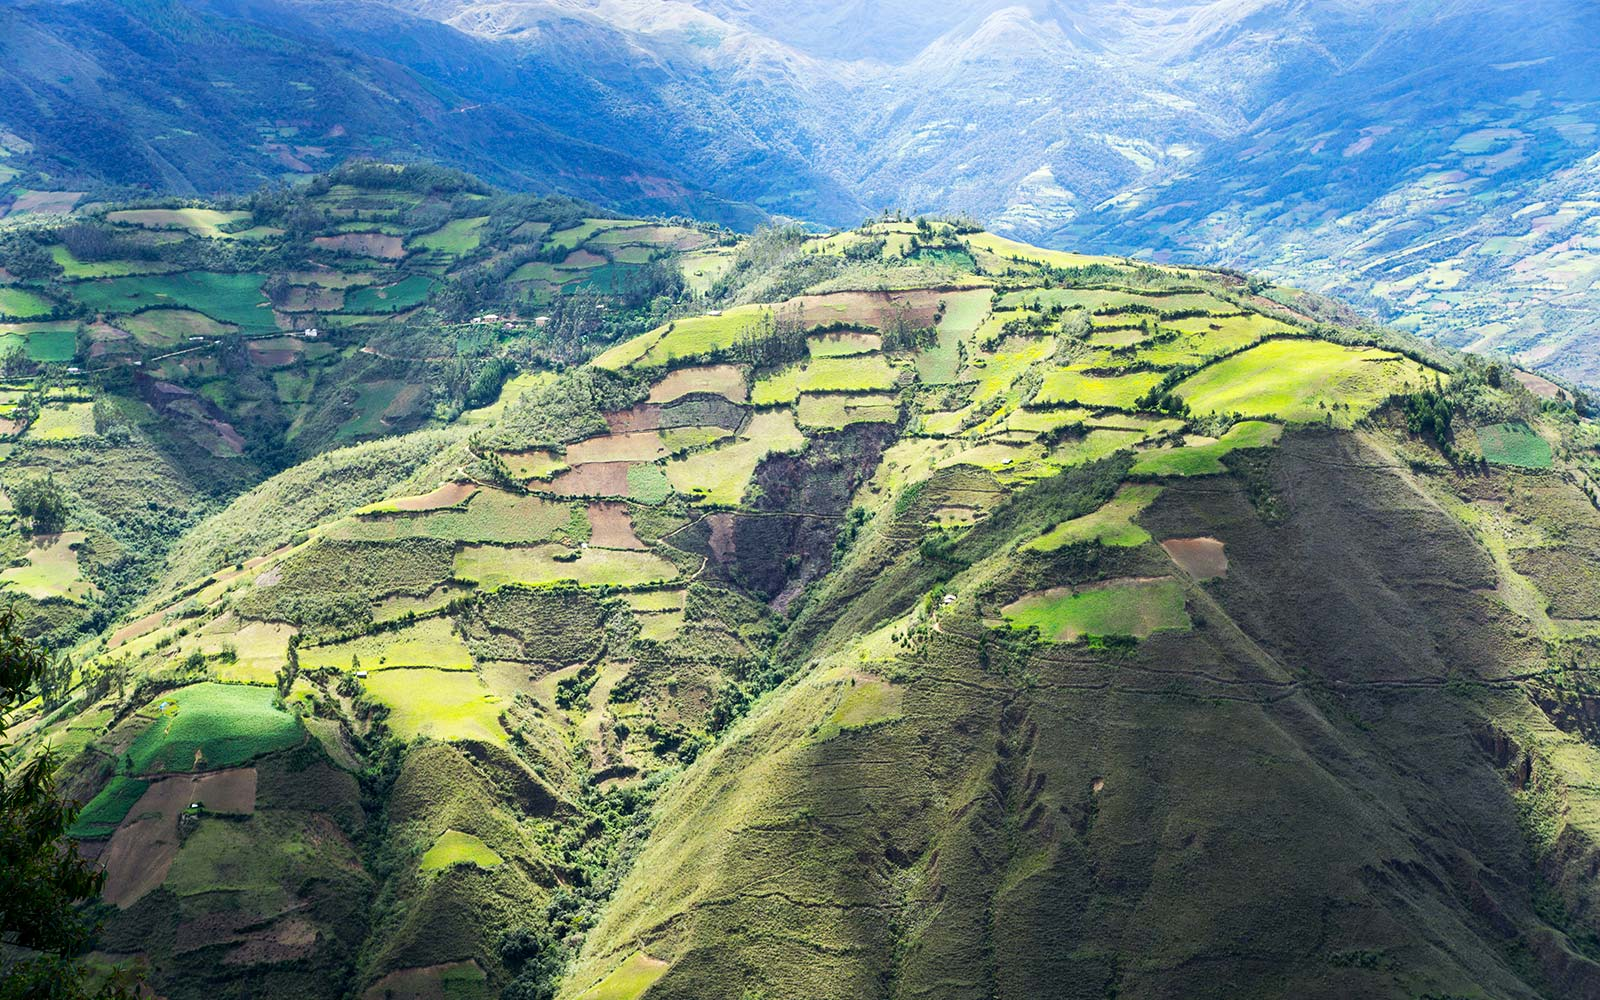 Kuelap Peru aerial lost city tourism